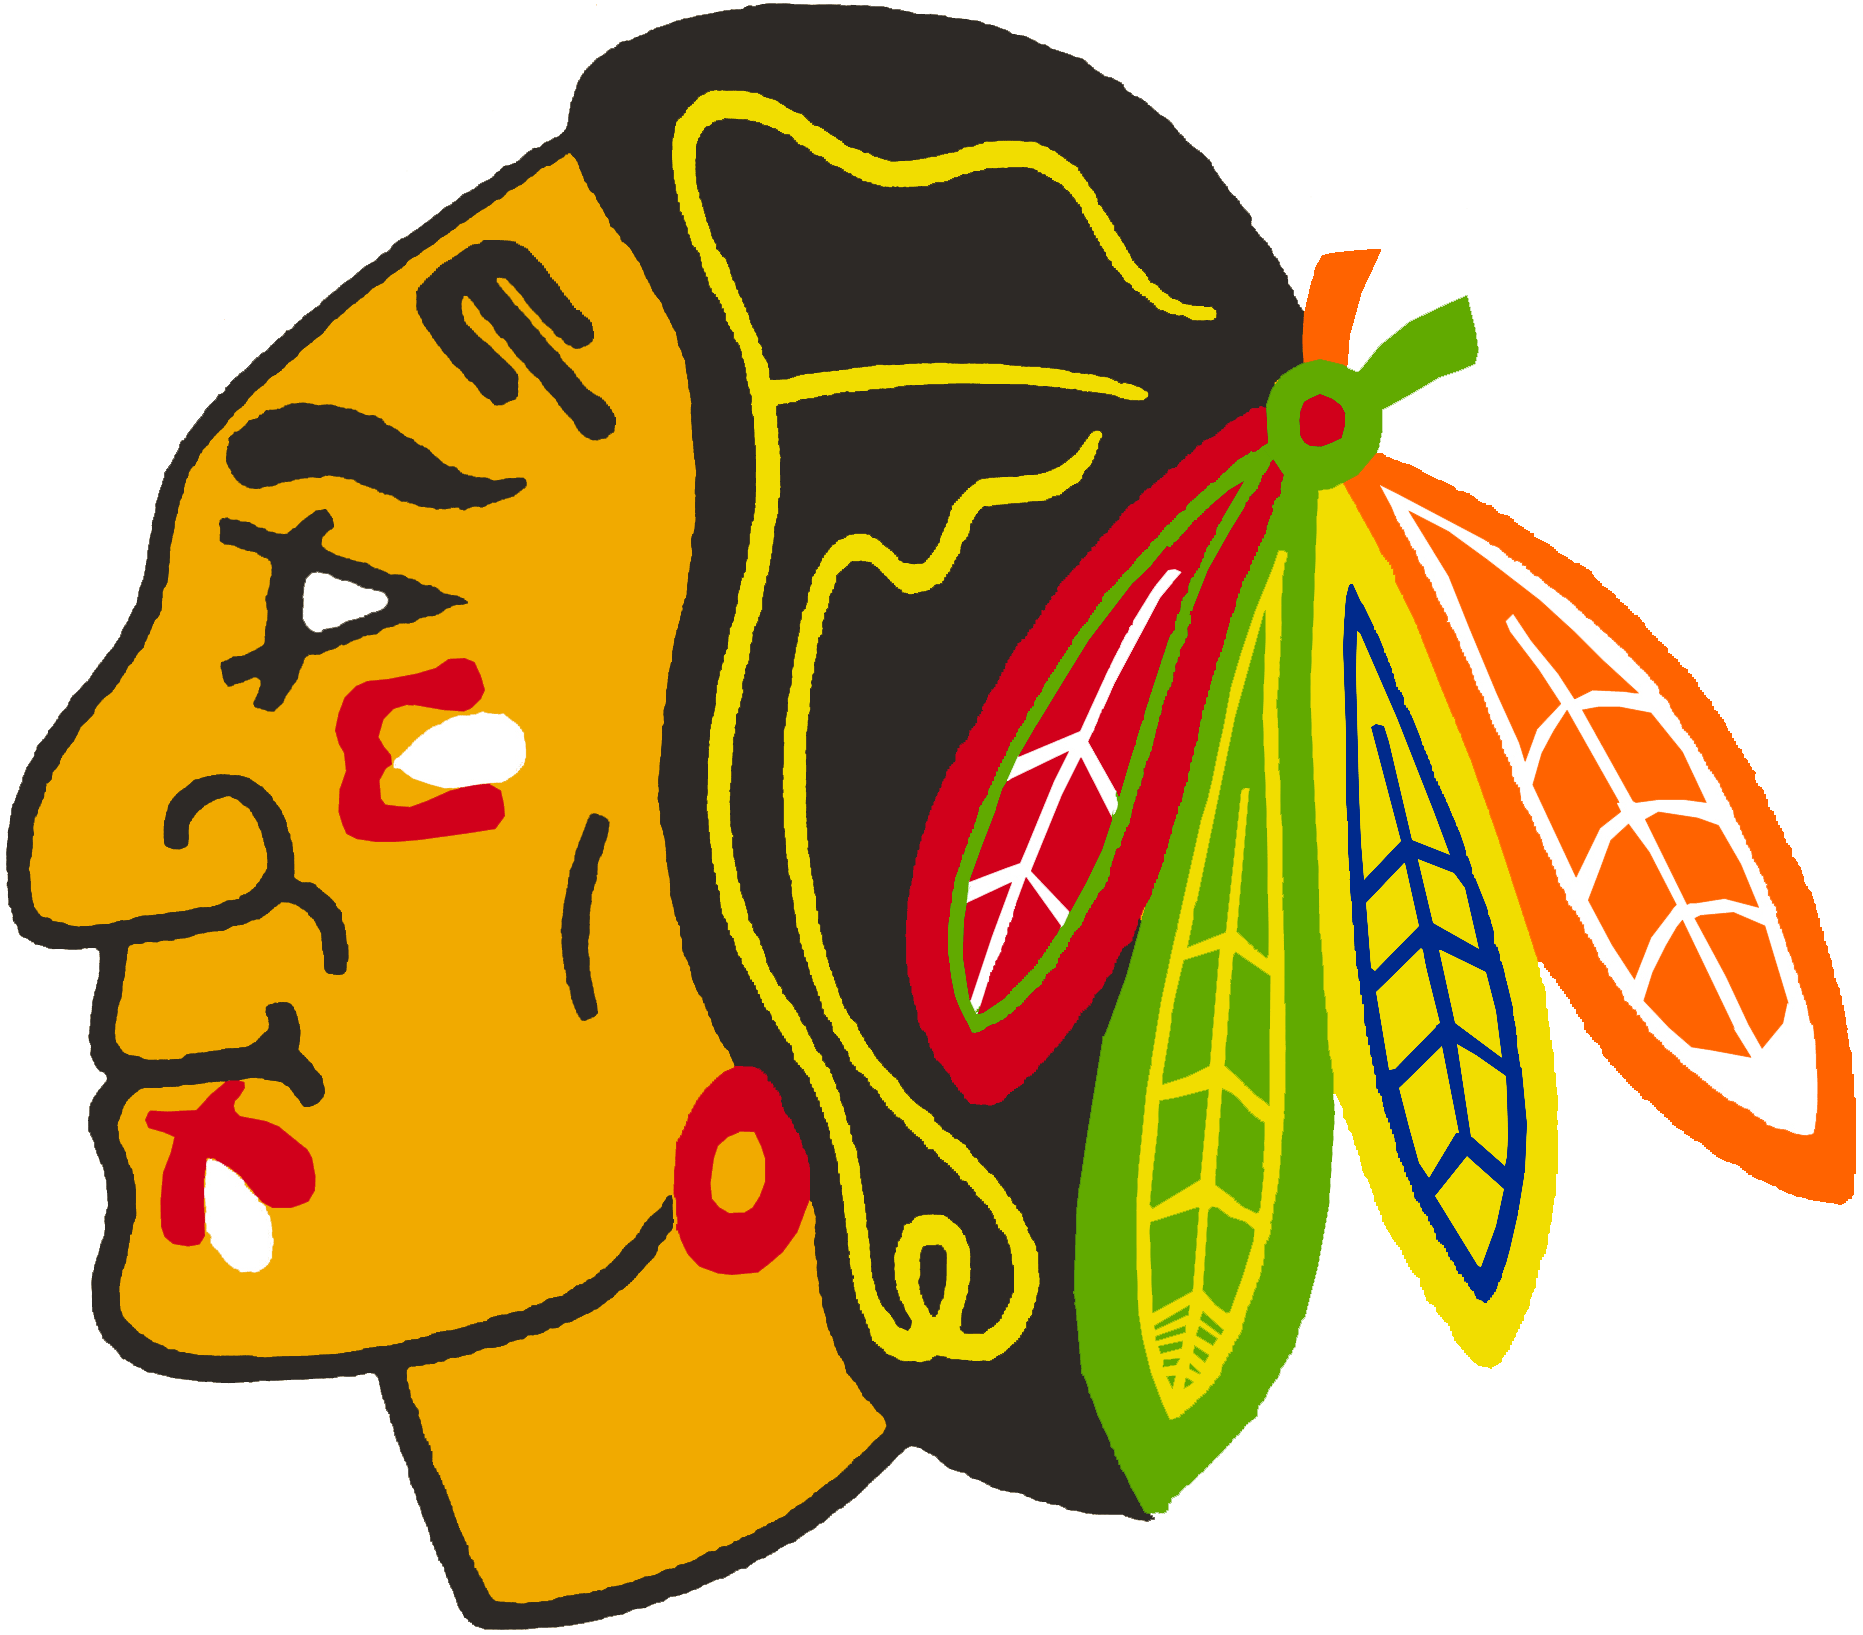 Chicago Black Hawks Logo Primary Logo (1959/60-1985/86) - A Native American head with a feathered head dress. Name of franchise changed for the 1986-87 season. SportsLogos.Net